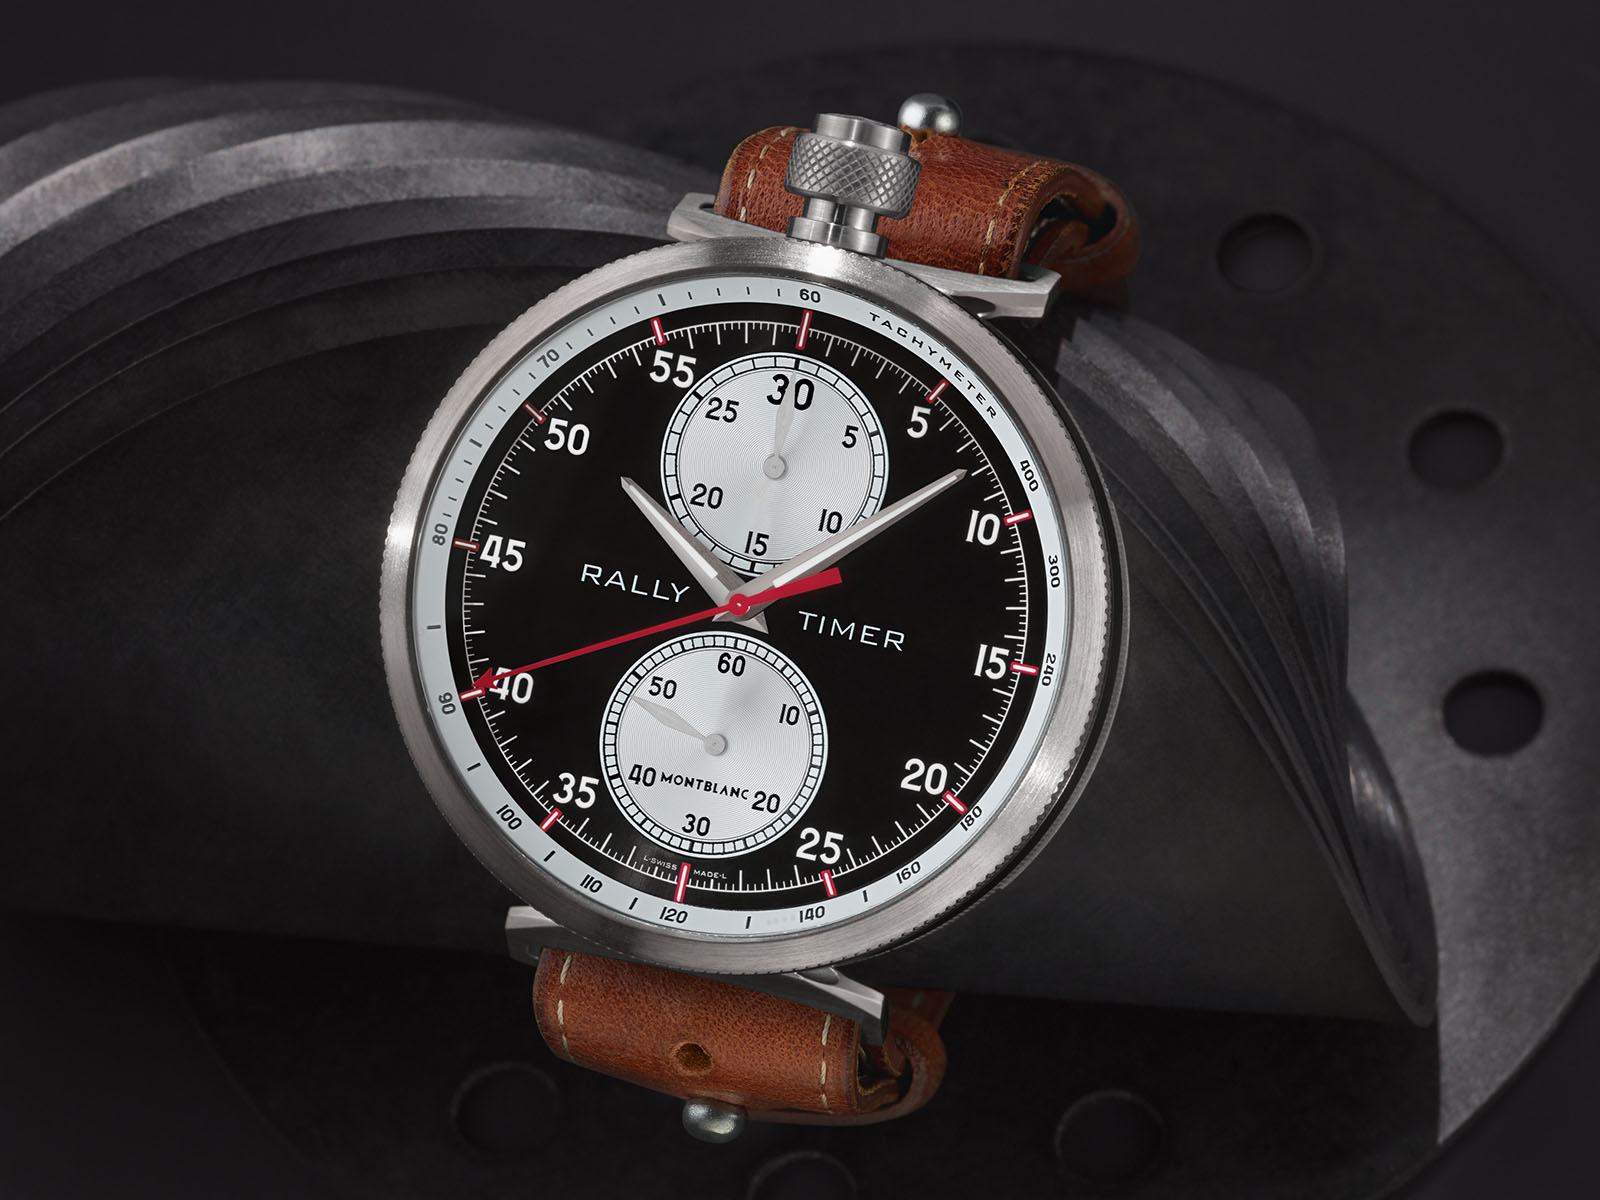 Montblanc-timewalker-rally-timer-chronograph-limited-edition-1.jpg